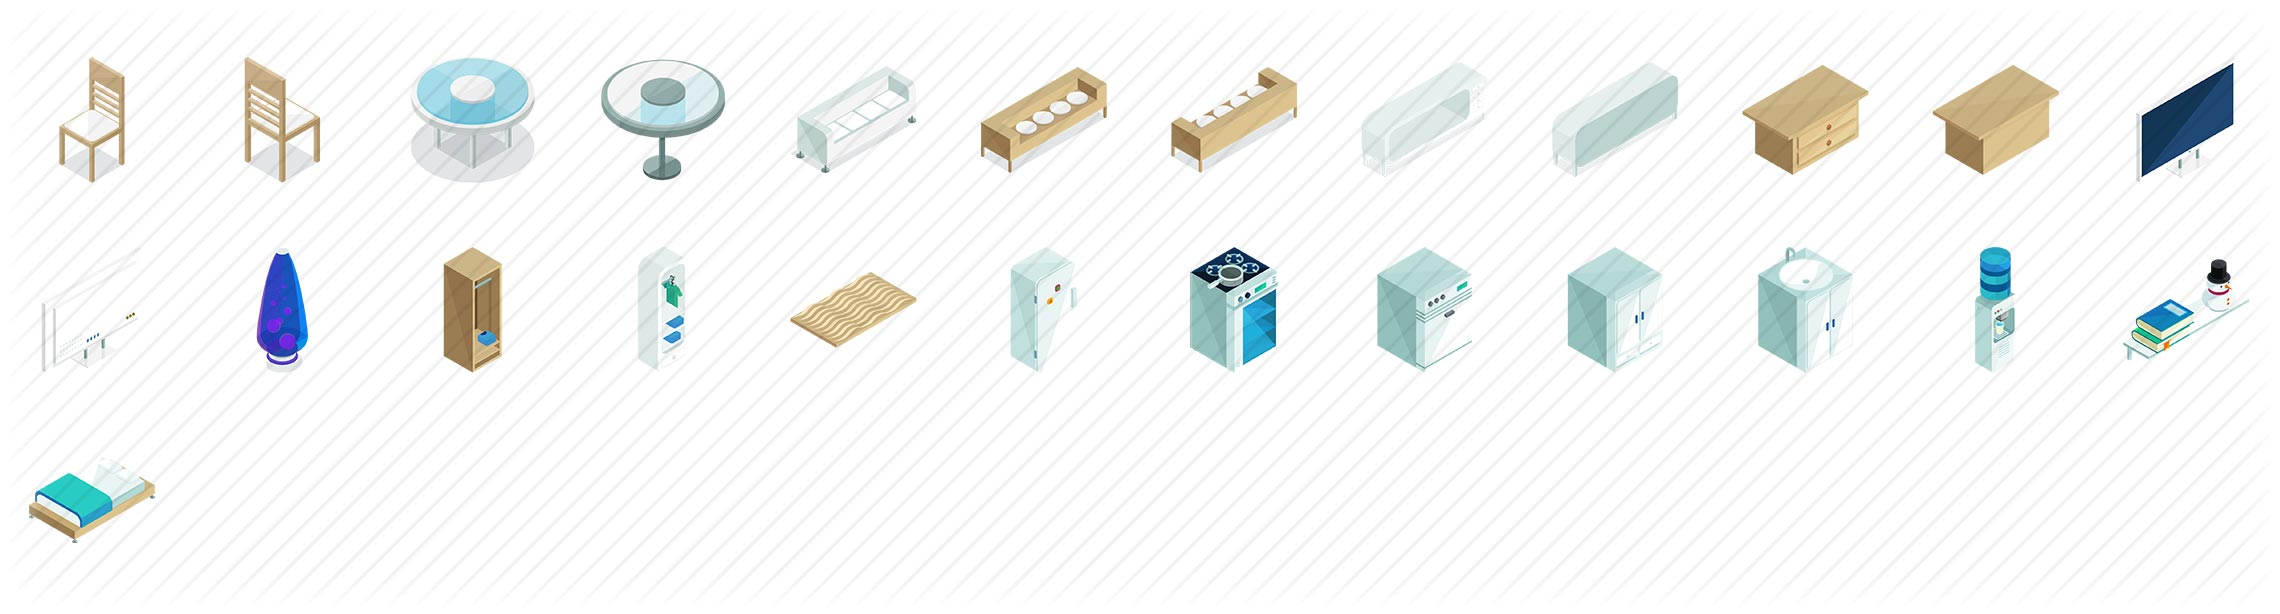 Furniture Isometric Icons